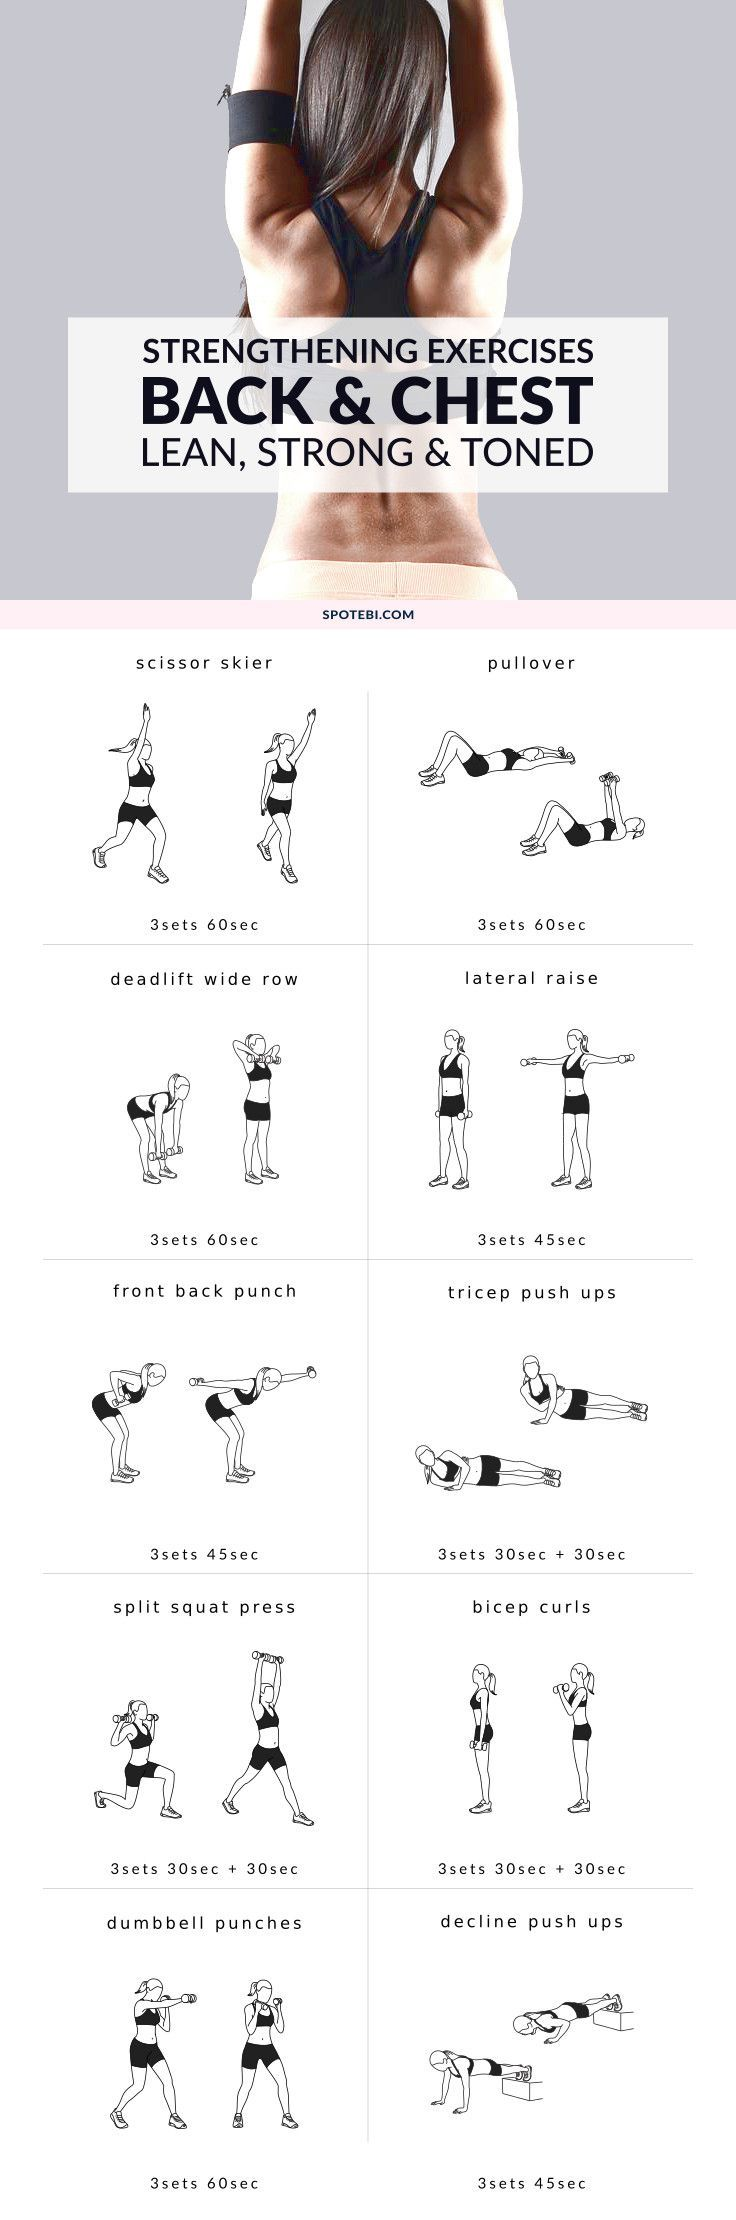 Lift your breasts naturally! Try these chest and back strengthening exercises for women to help tone, firm and lift your chest and improve your posture. http://www.spotebi.com/workout-routines/chest-back-strengthening-exercises-lean-strong-toned/